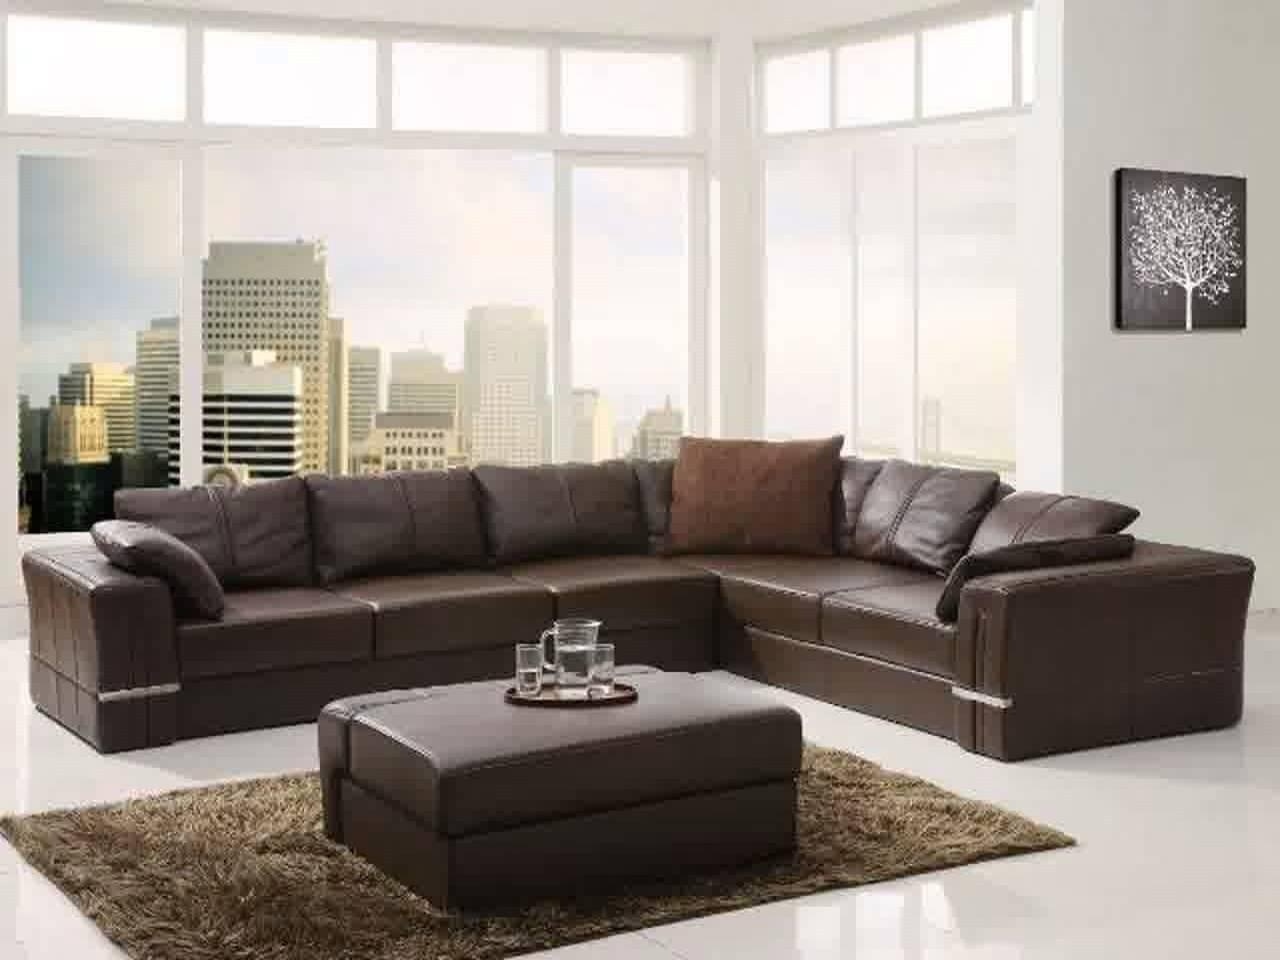 Big Lots Sectional Sofa | Sofa Gallery | Kengire Inside Big Lots Leather Sofas (Image 3 of 20)